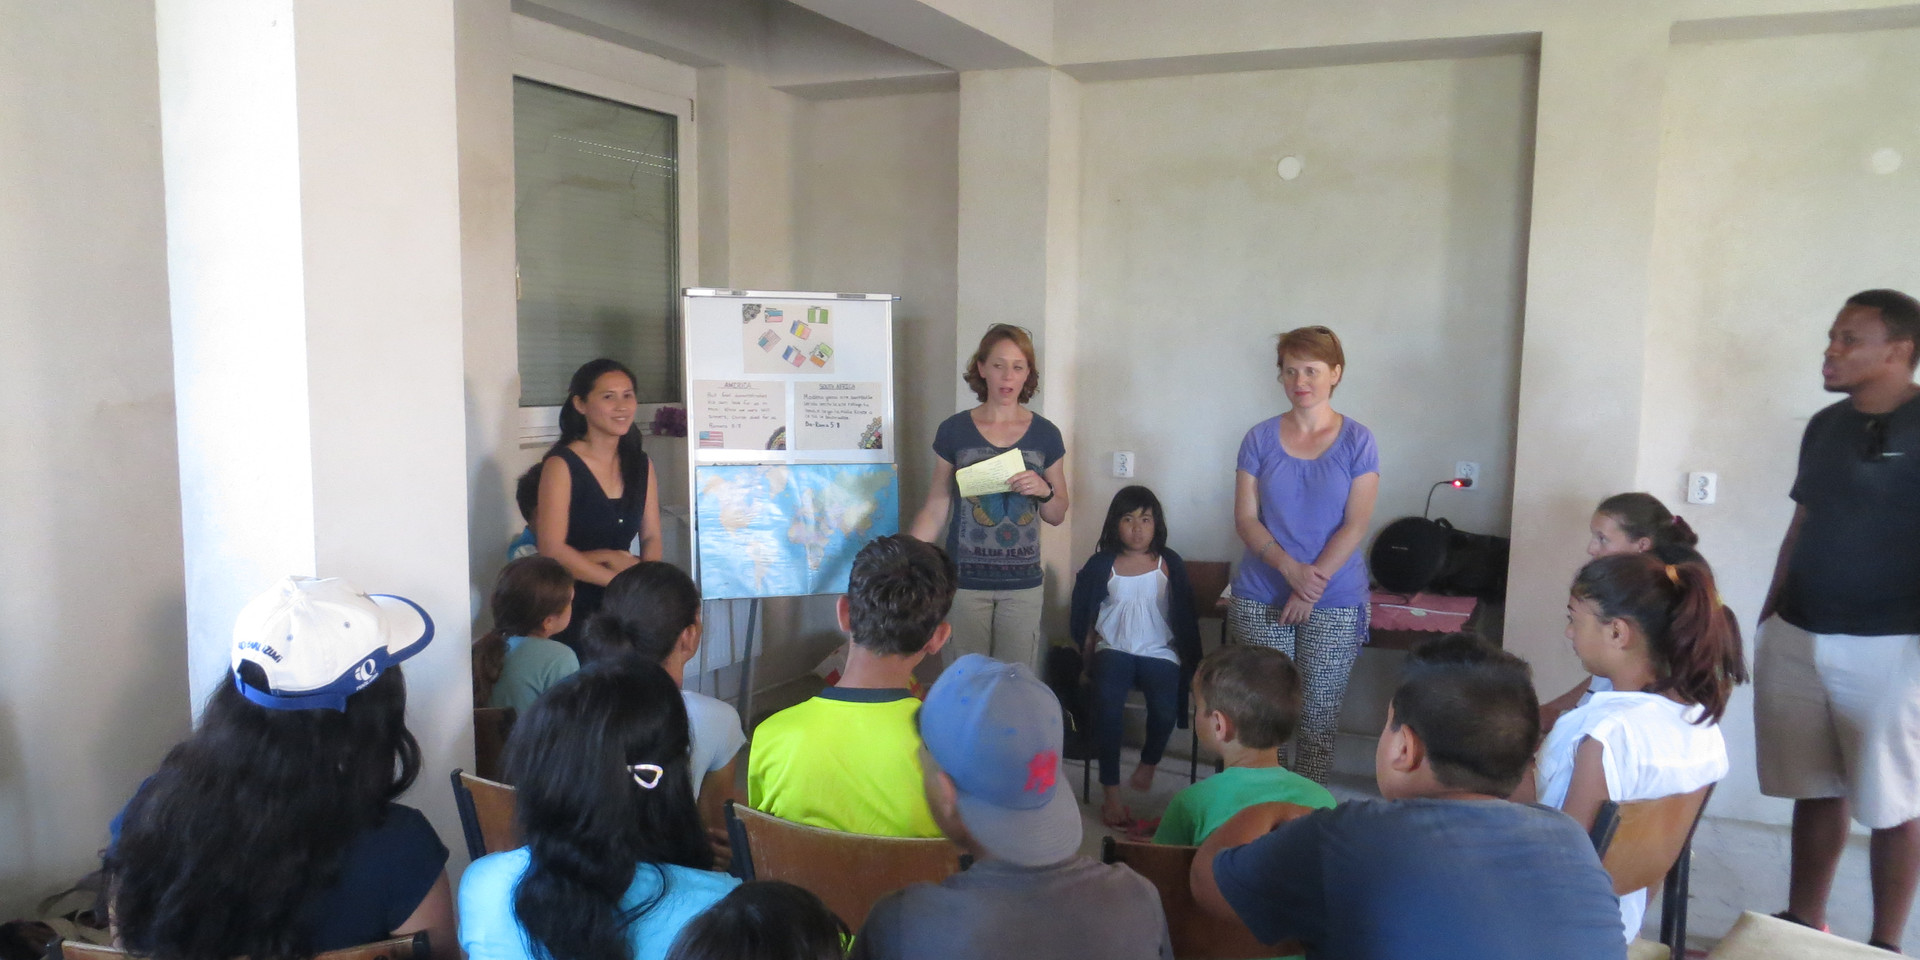 Kid's Ministry teaching them Bible verse in different languages